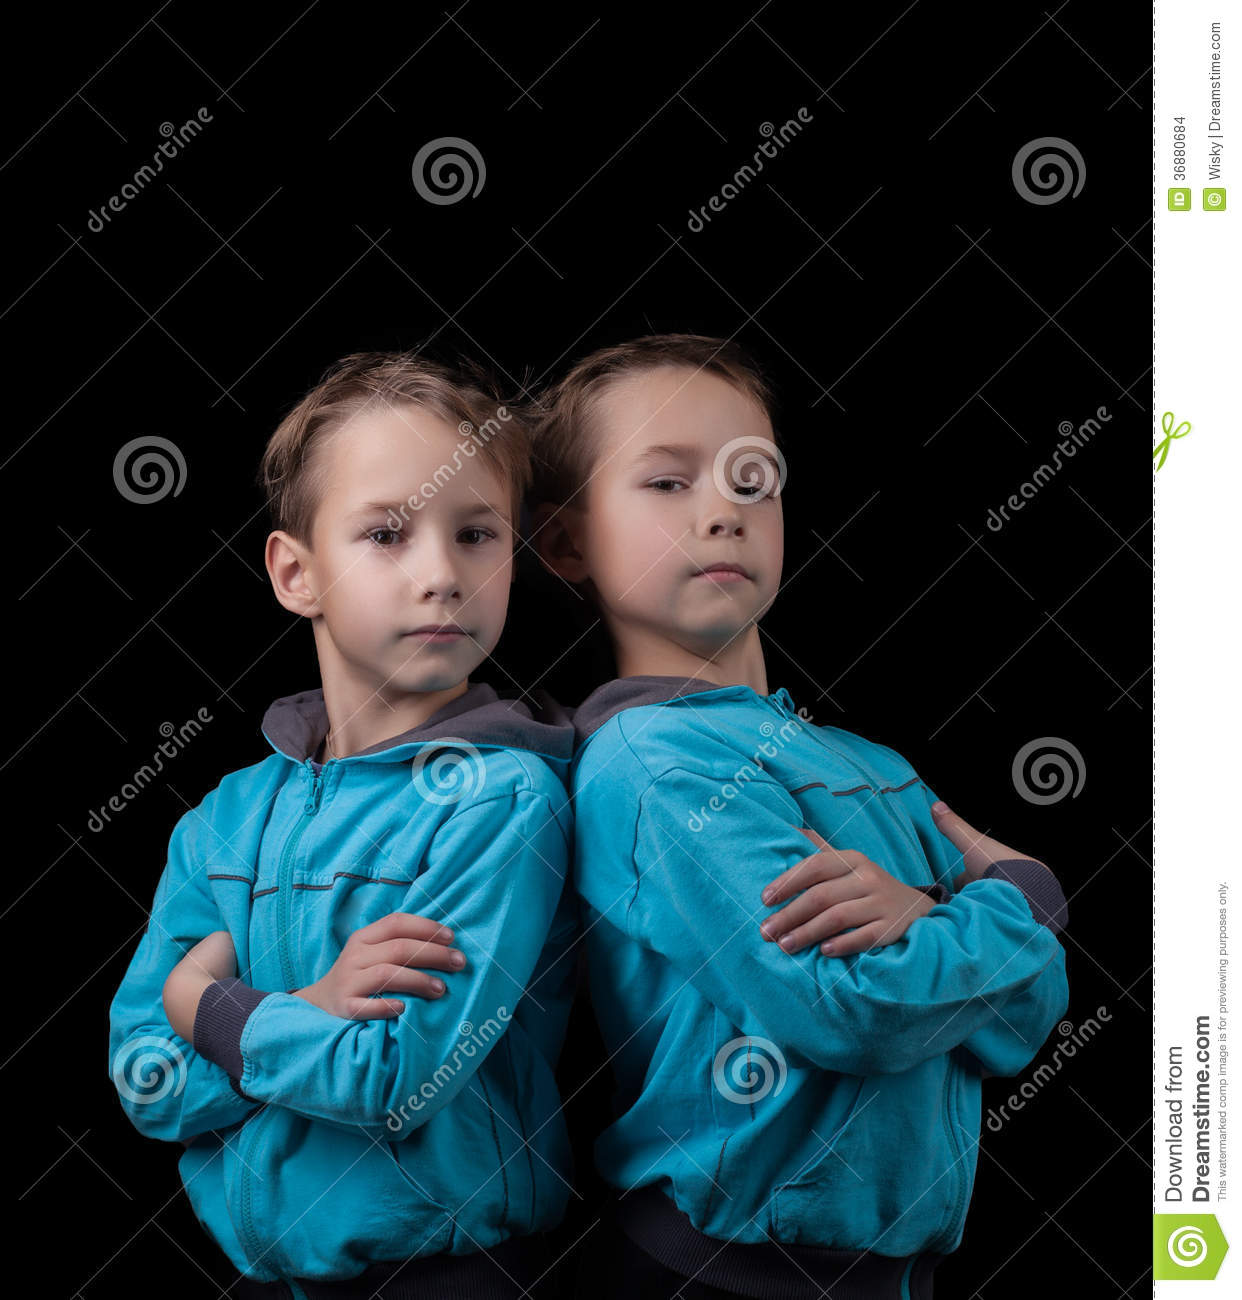 Portrait of adorable twin boys on black